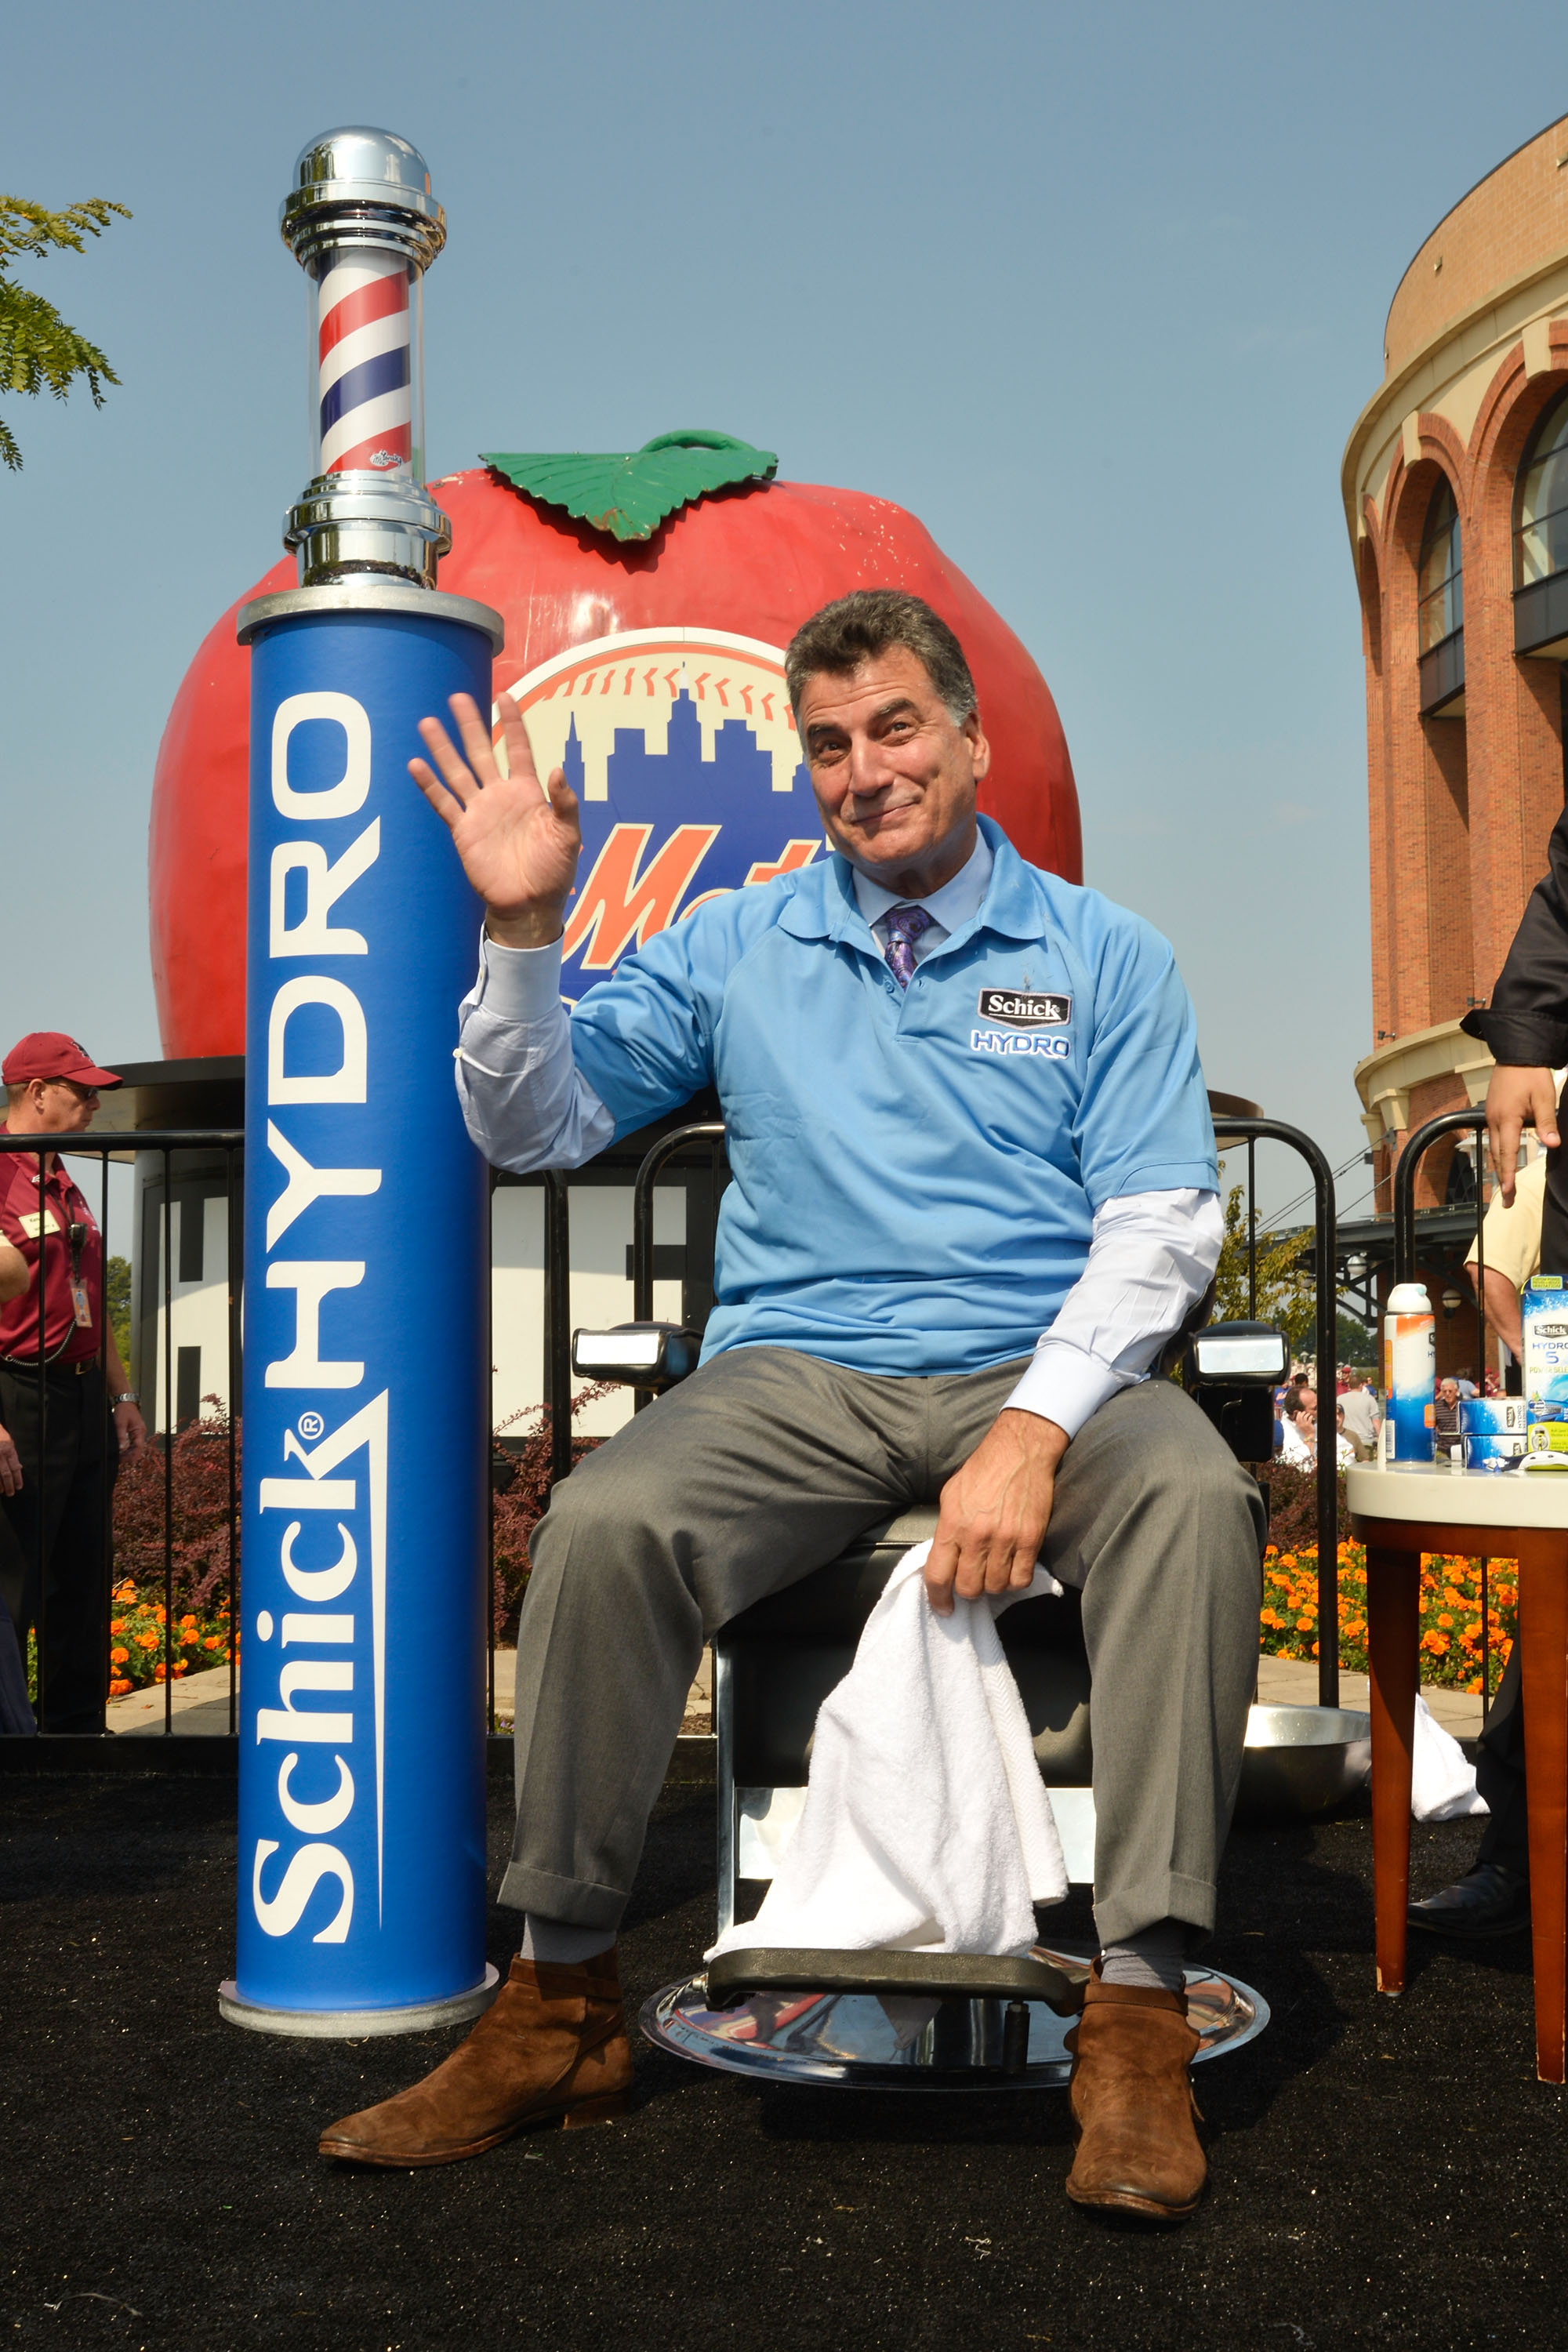 Keith Hernandez, along with Ron Darling and Gary Cohen, make SNY a baseball fan's dream come true.